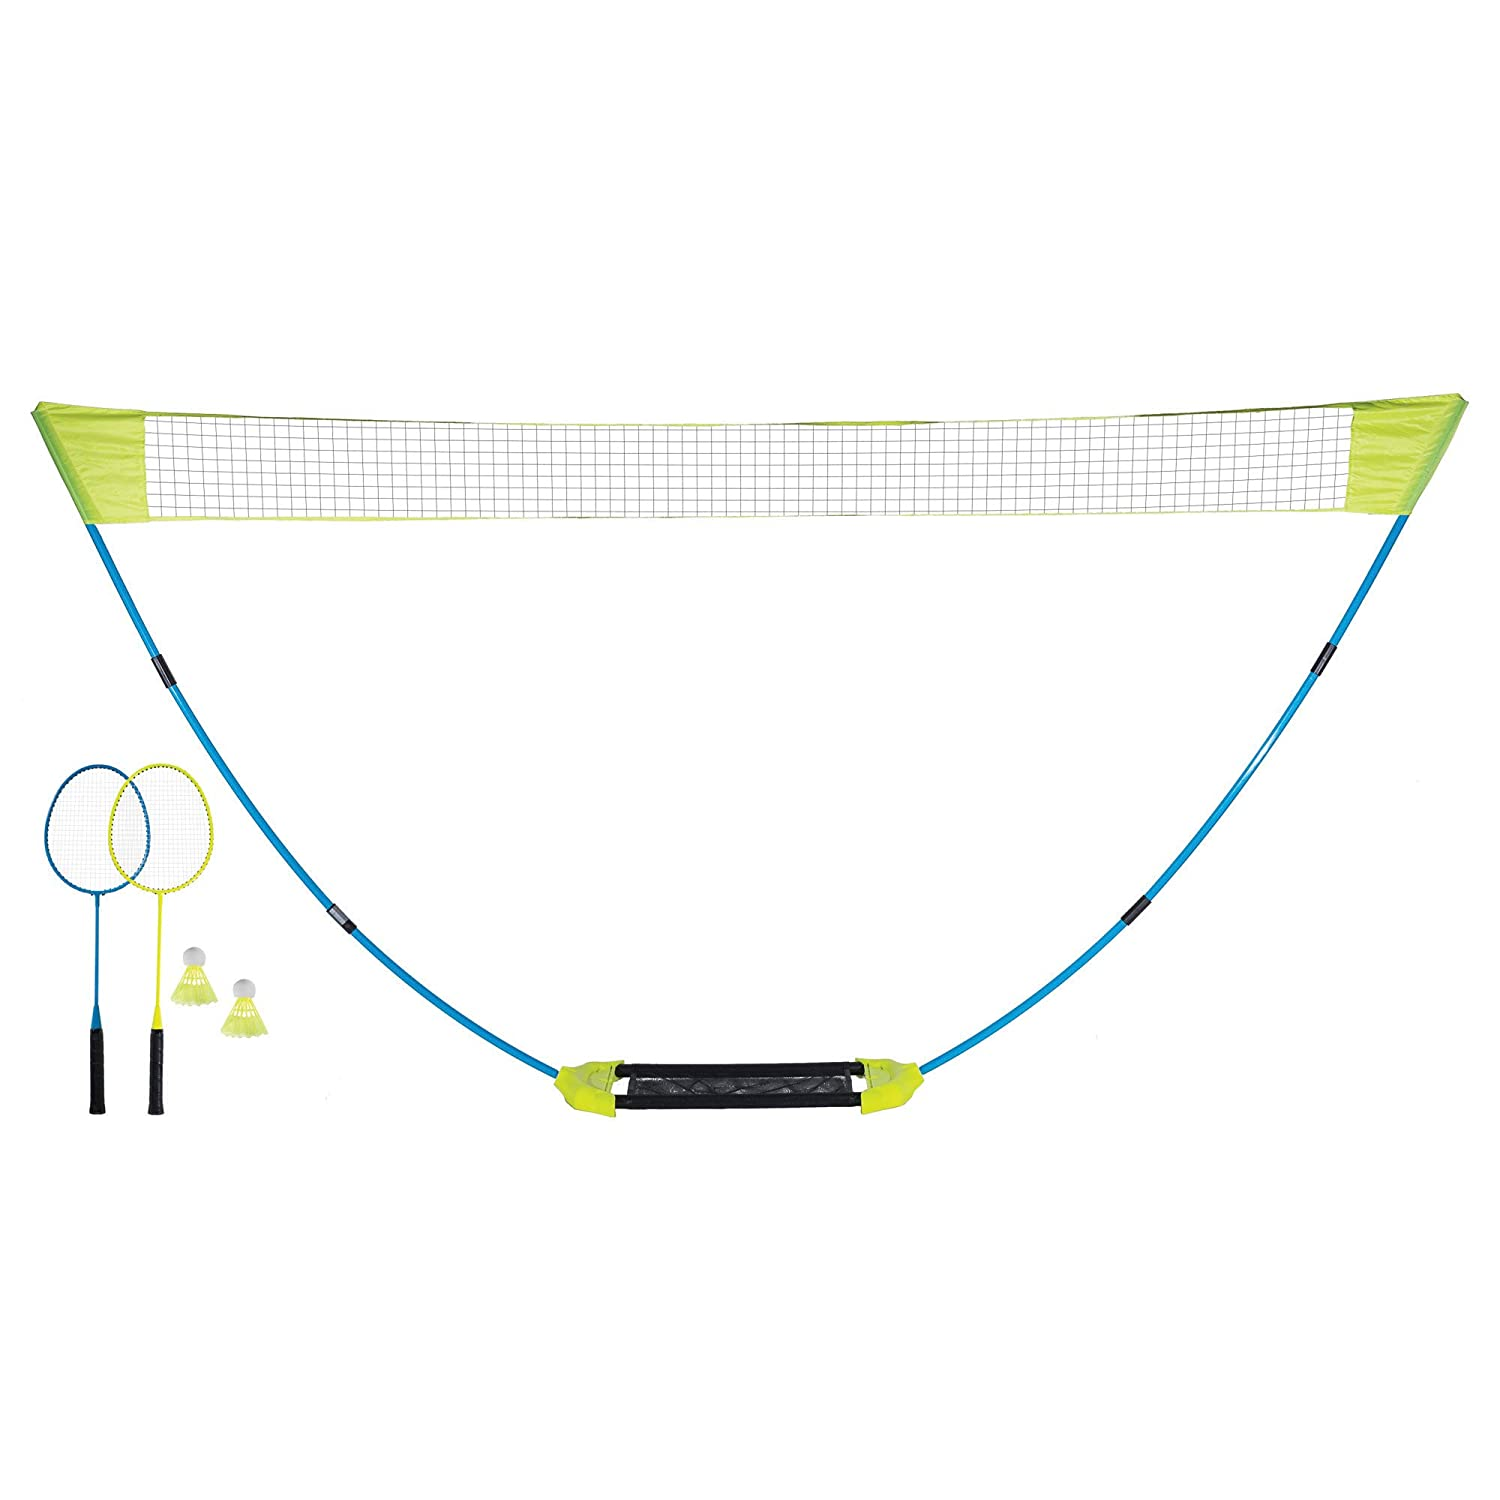 Includes 2 Rackets 2 Birdies and Pre-Strung Net and Poles Franklin Sports Badminton Net Set Badminton Net Sets Up In Seconds